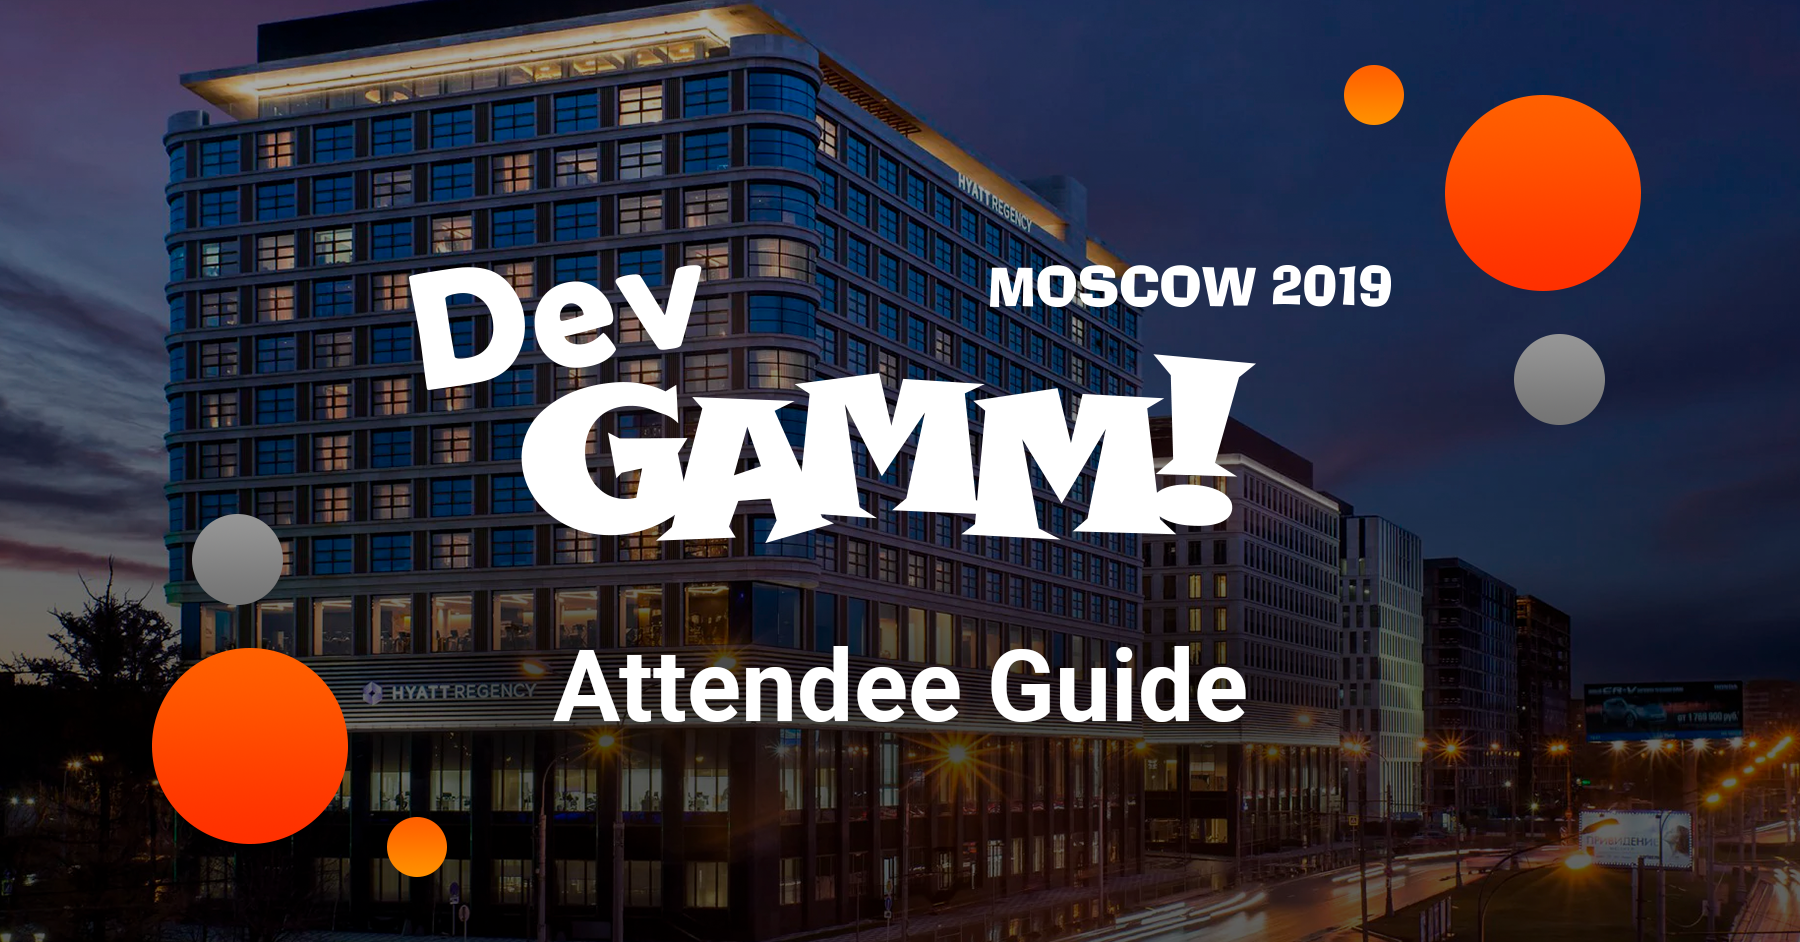 DevGAMM Attendee Guide: all you need to know